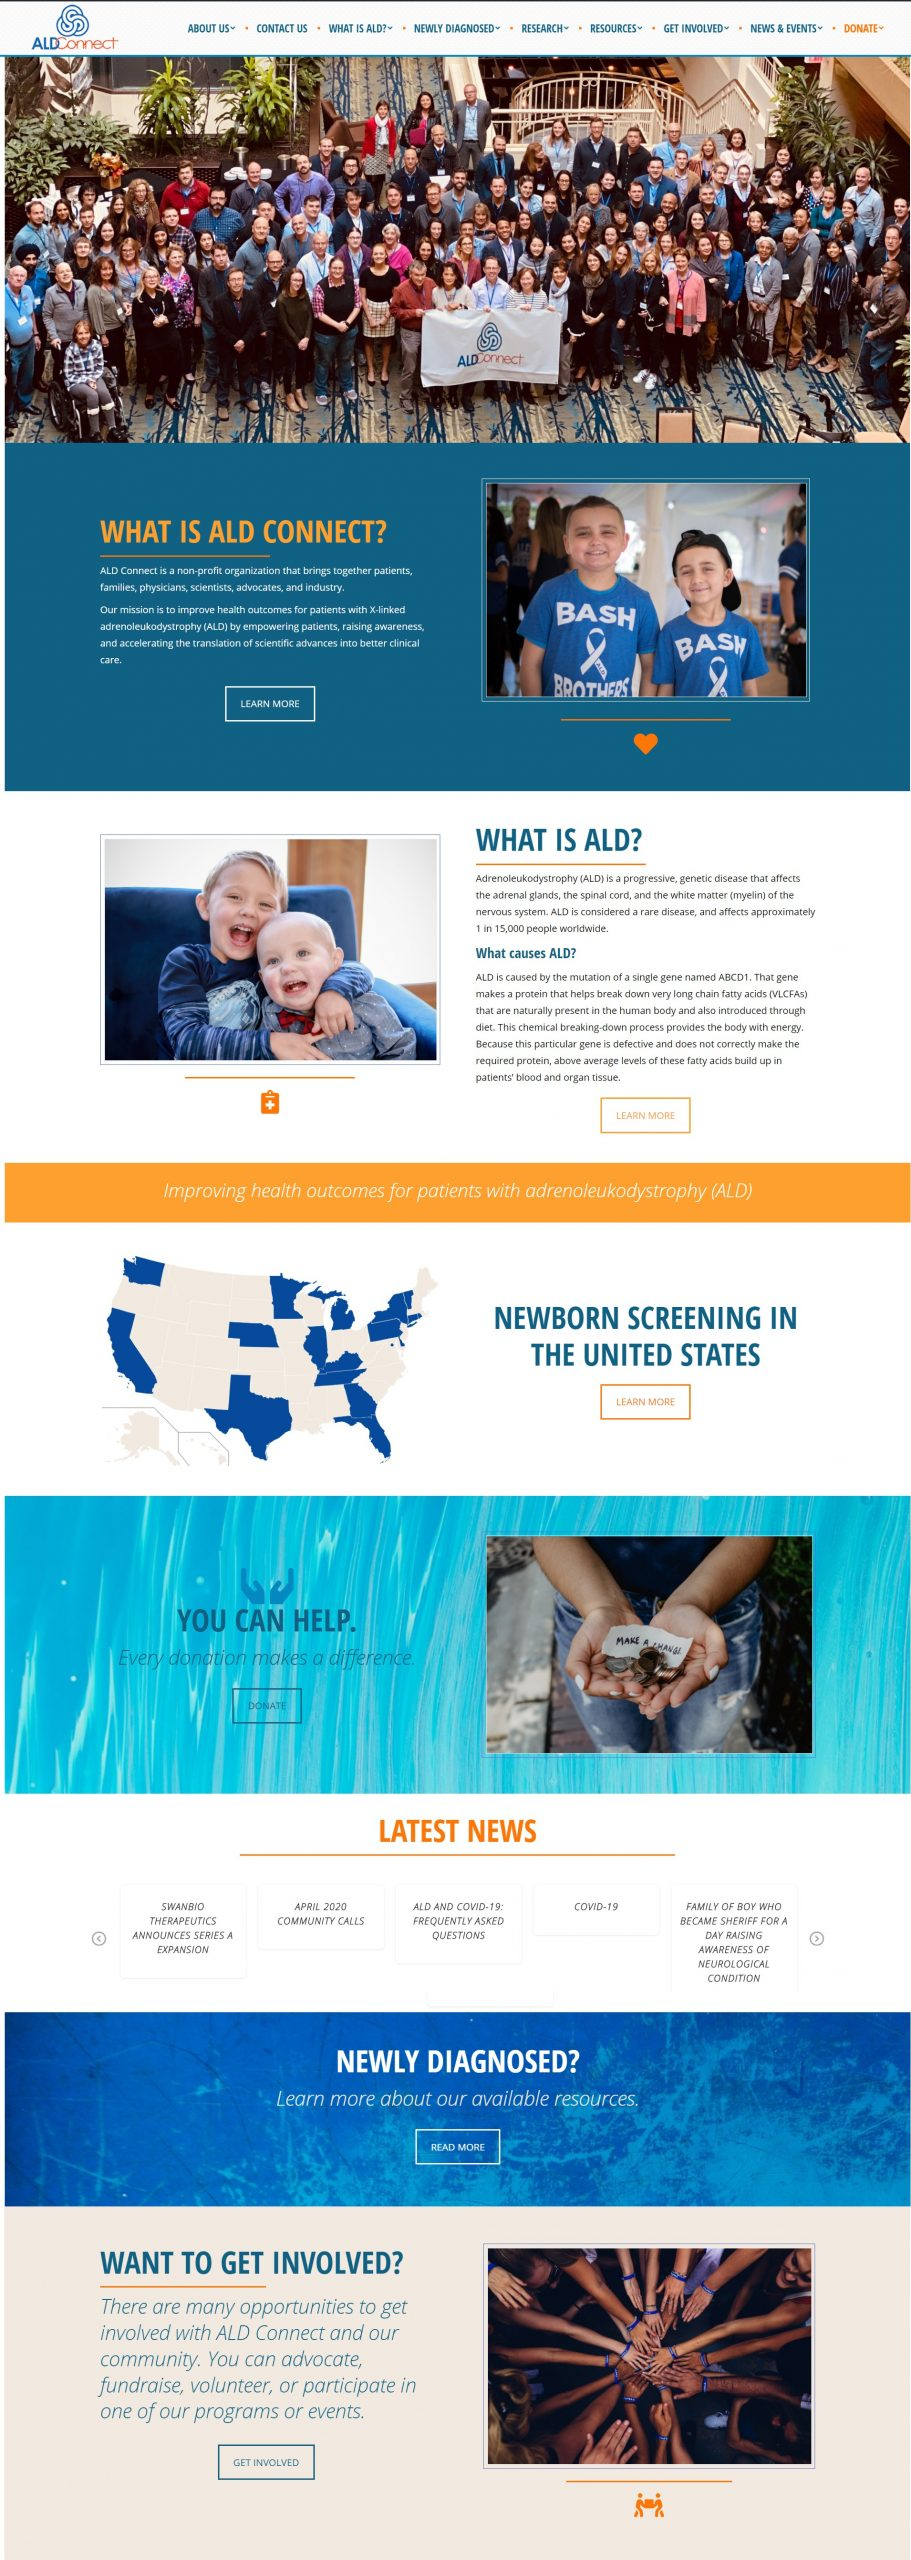 ALD Connect Redesign - Norfolk Web Design - Virginia Web Development - Nonprofit Web Design